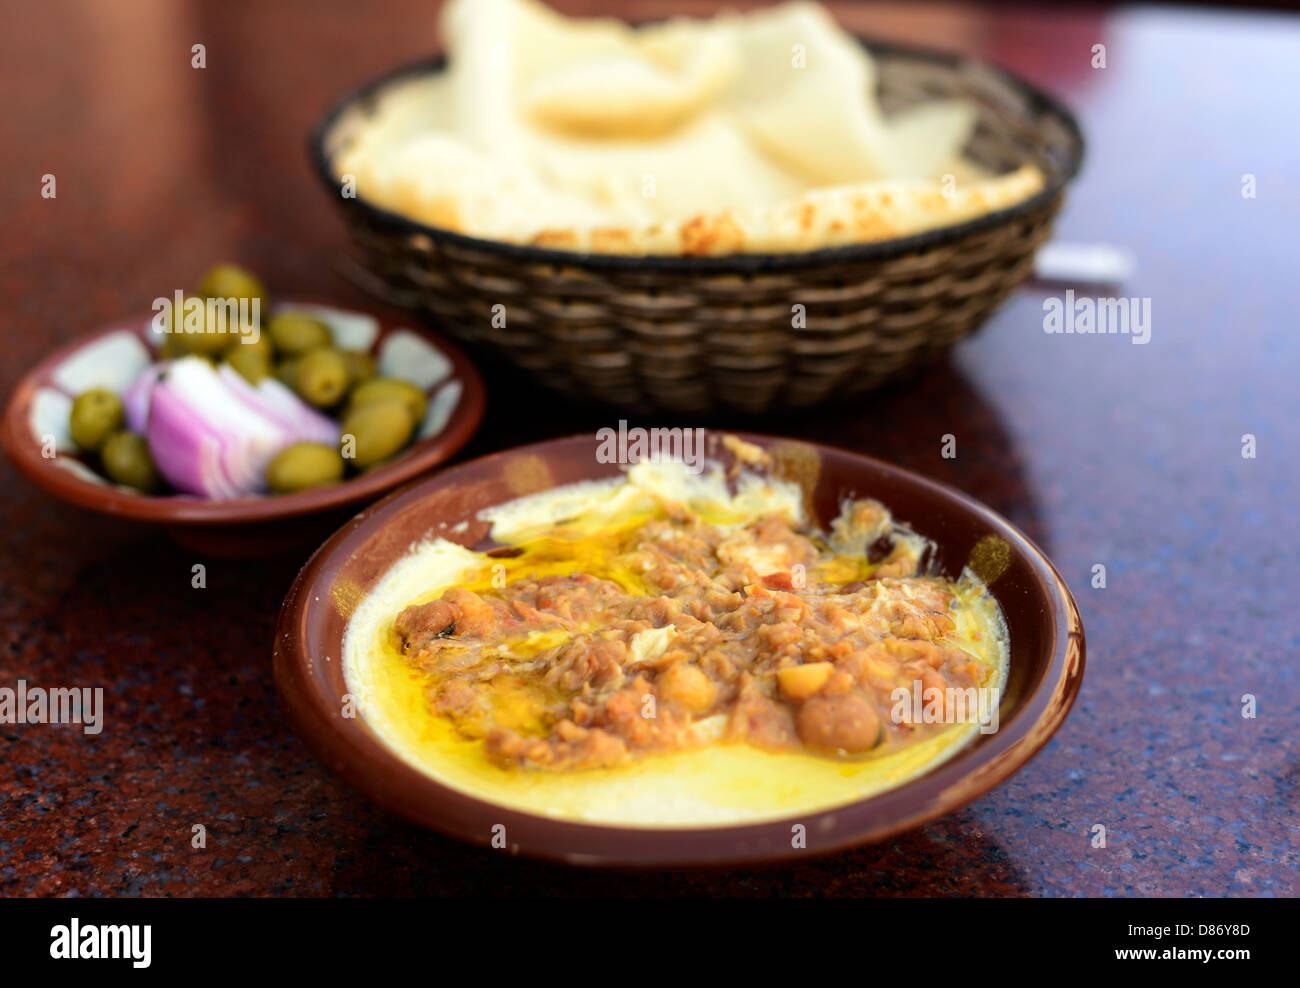 Hummus with Fuul ( Ful), a popular staple food in the middle east. - Stock Image